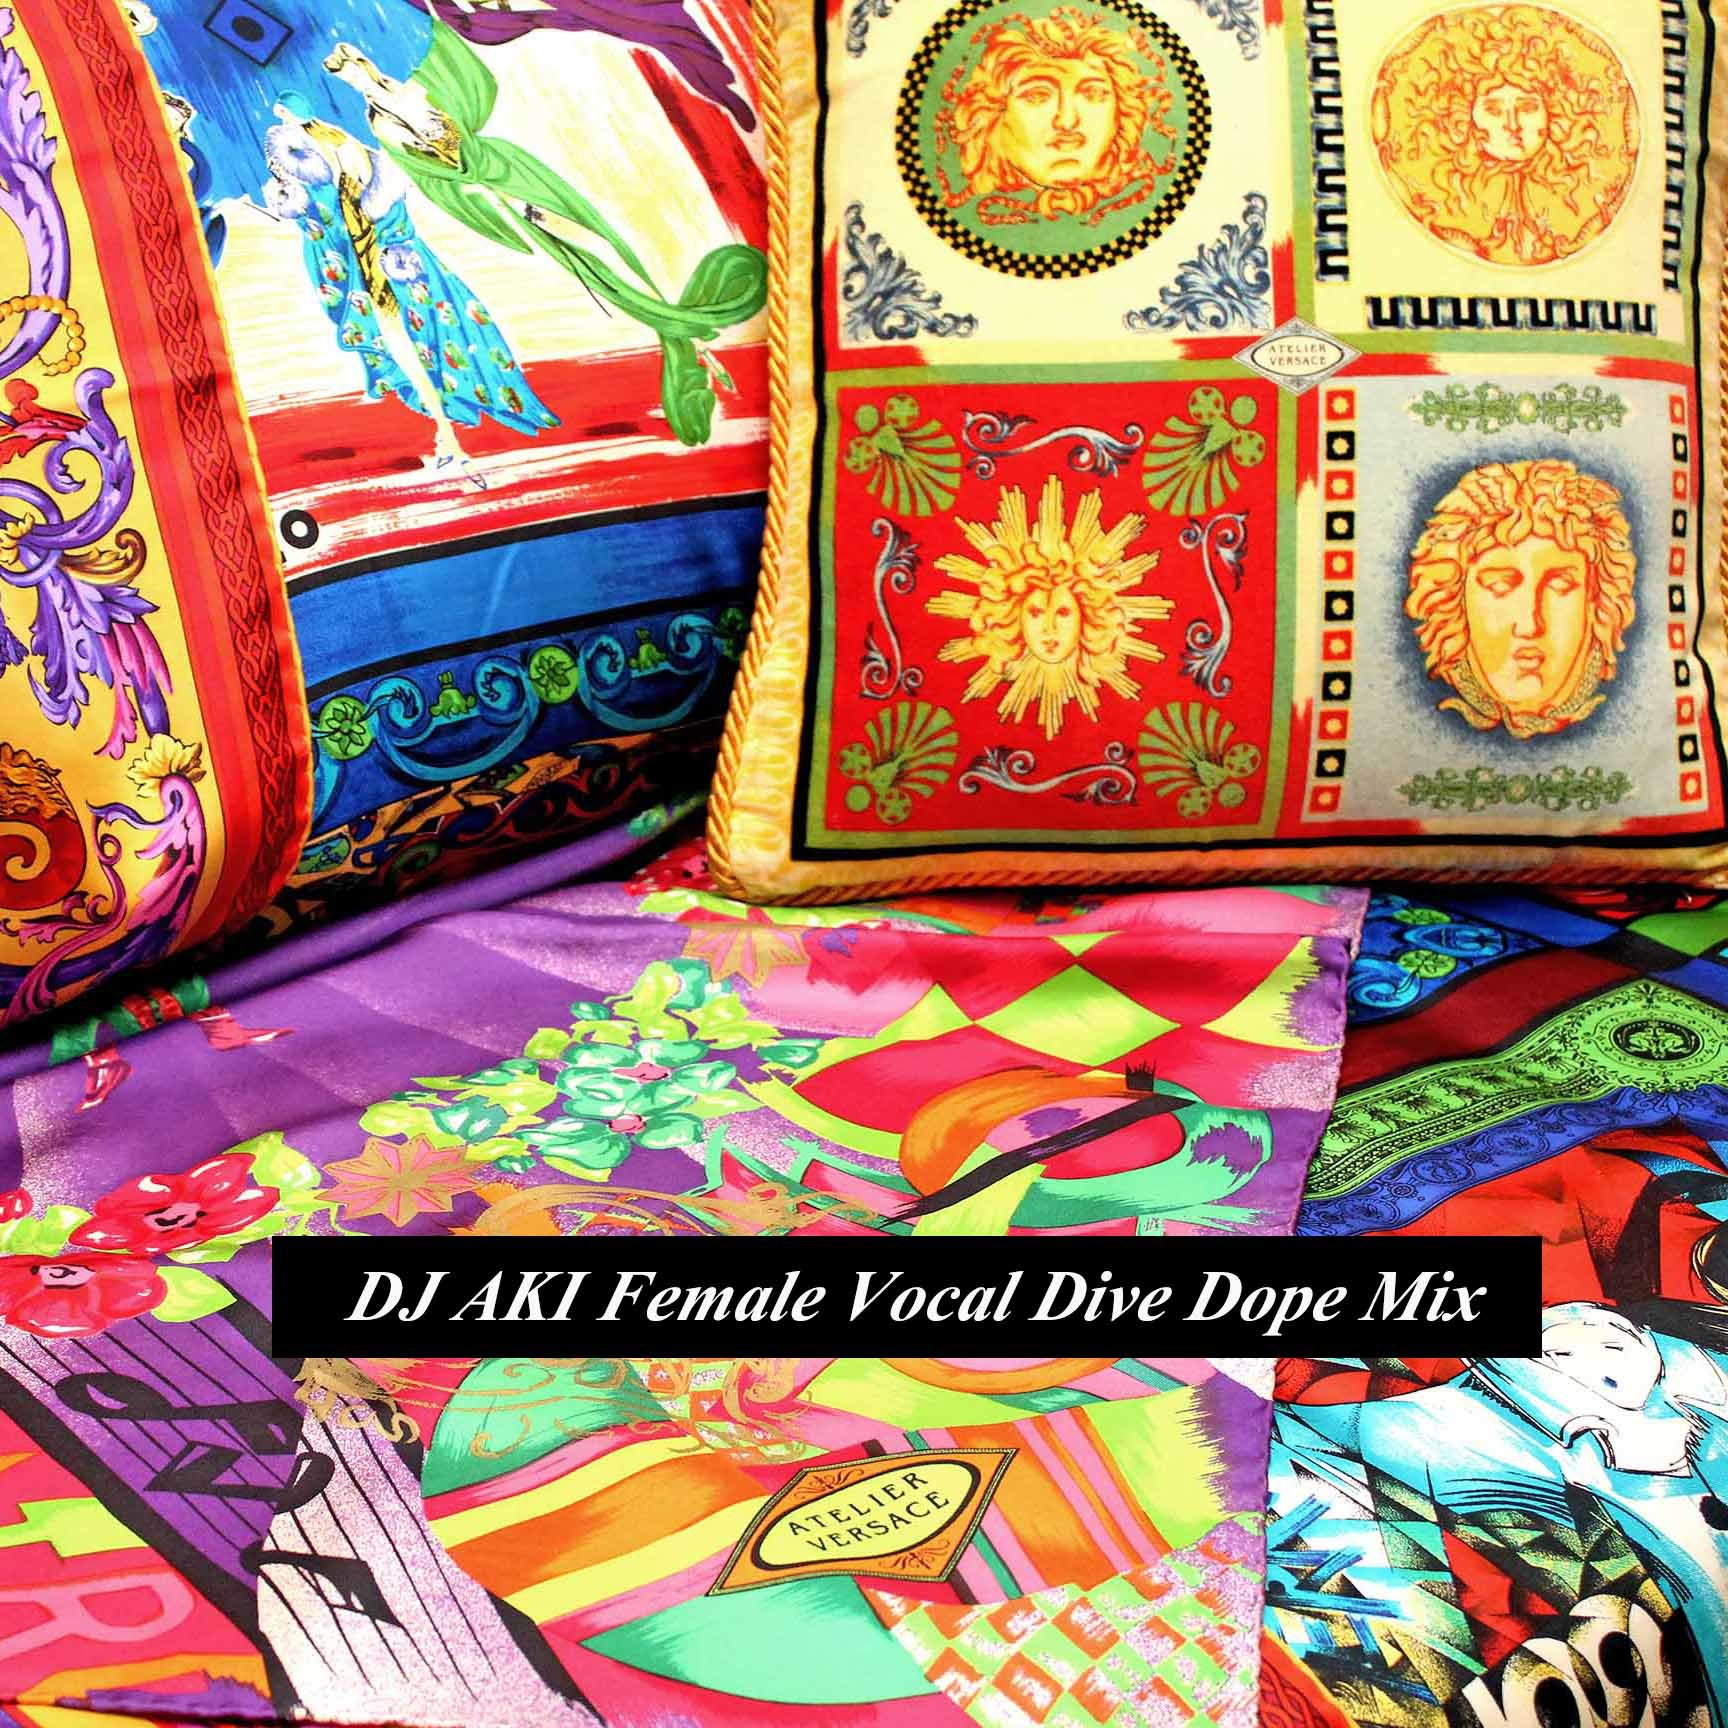 DJ AKI Female Vocal Dive Dope Mix